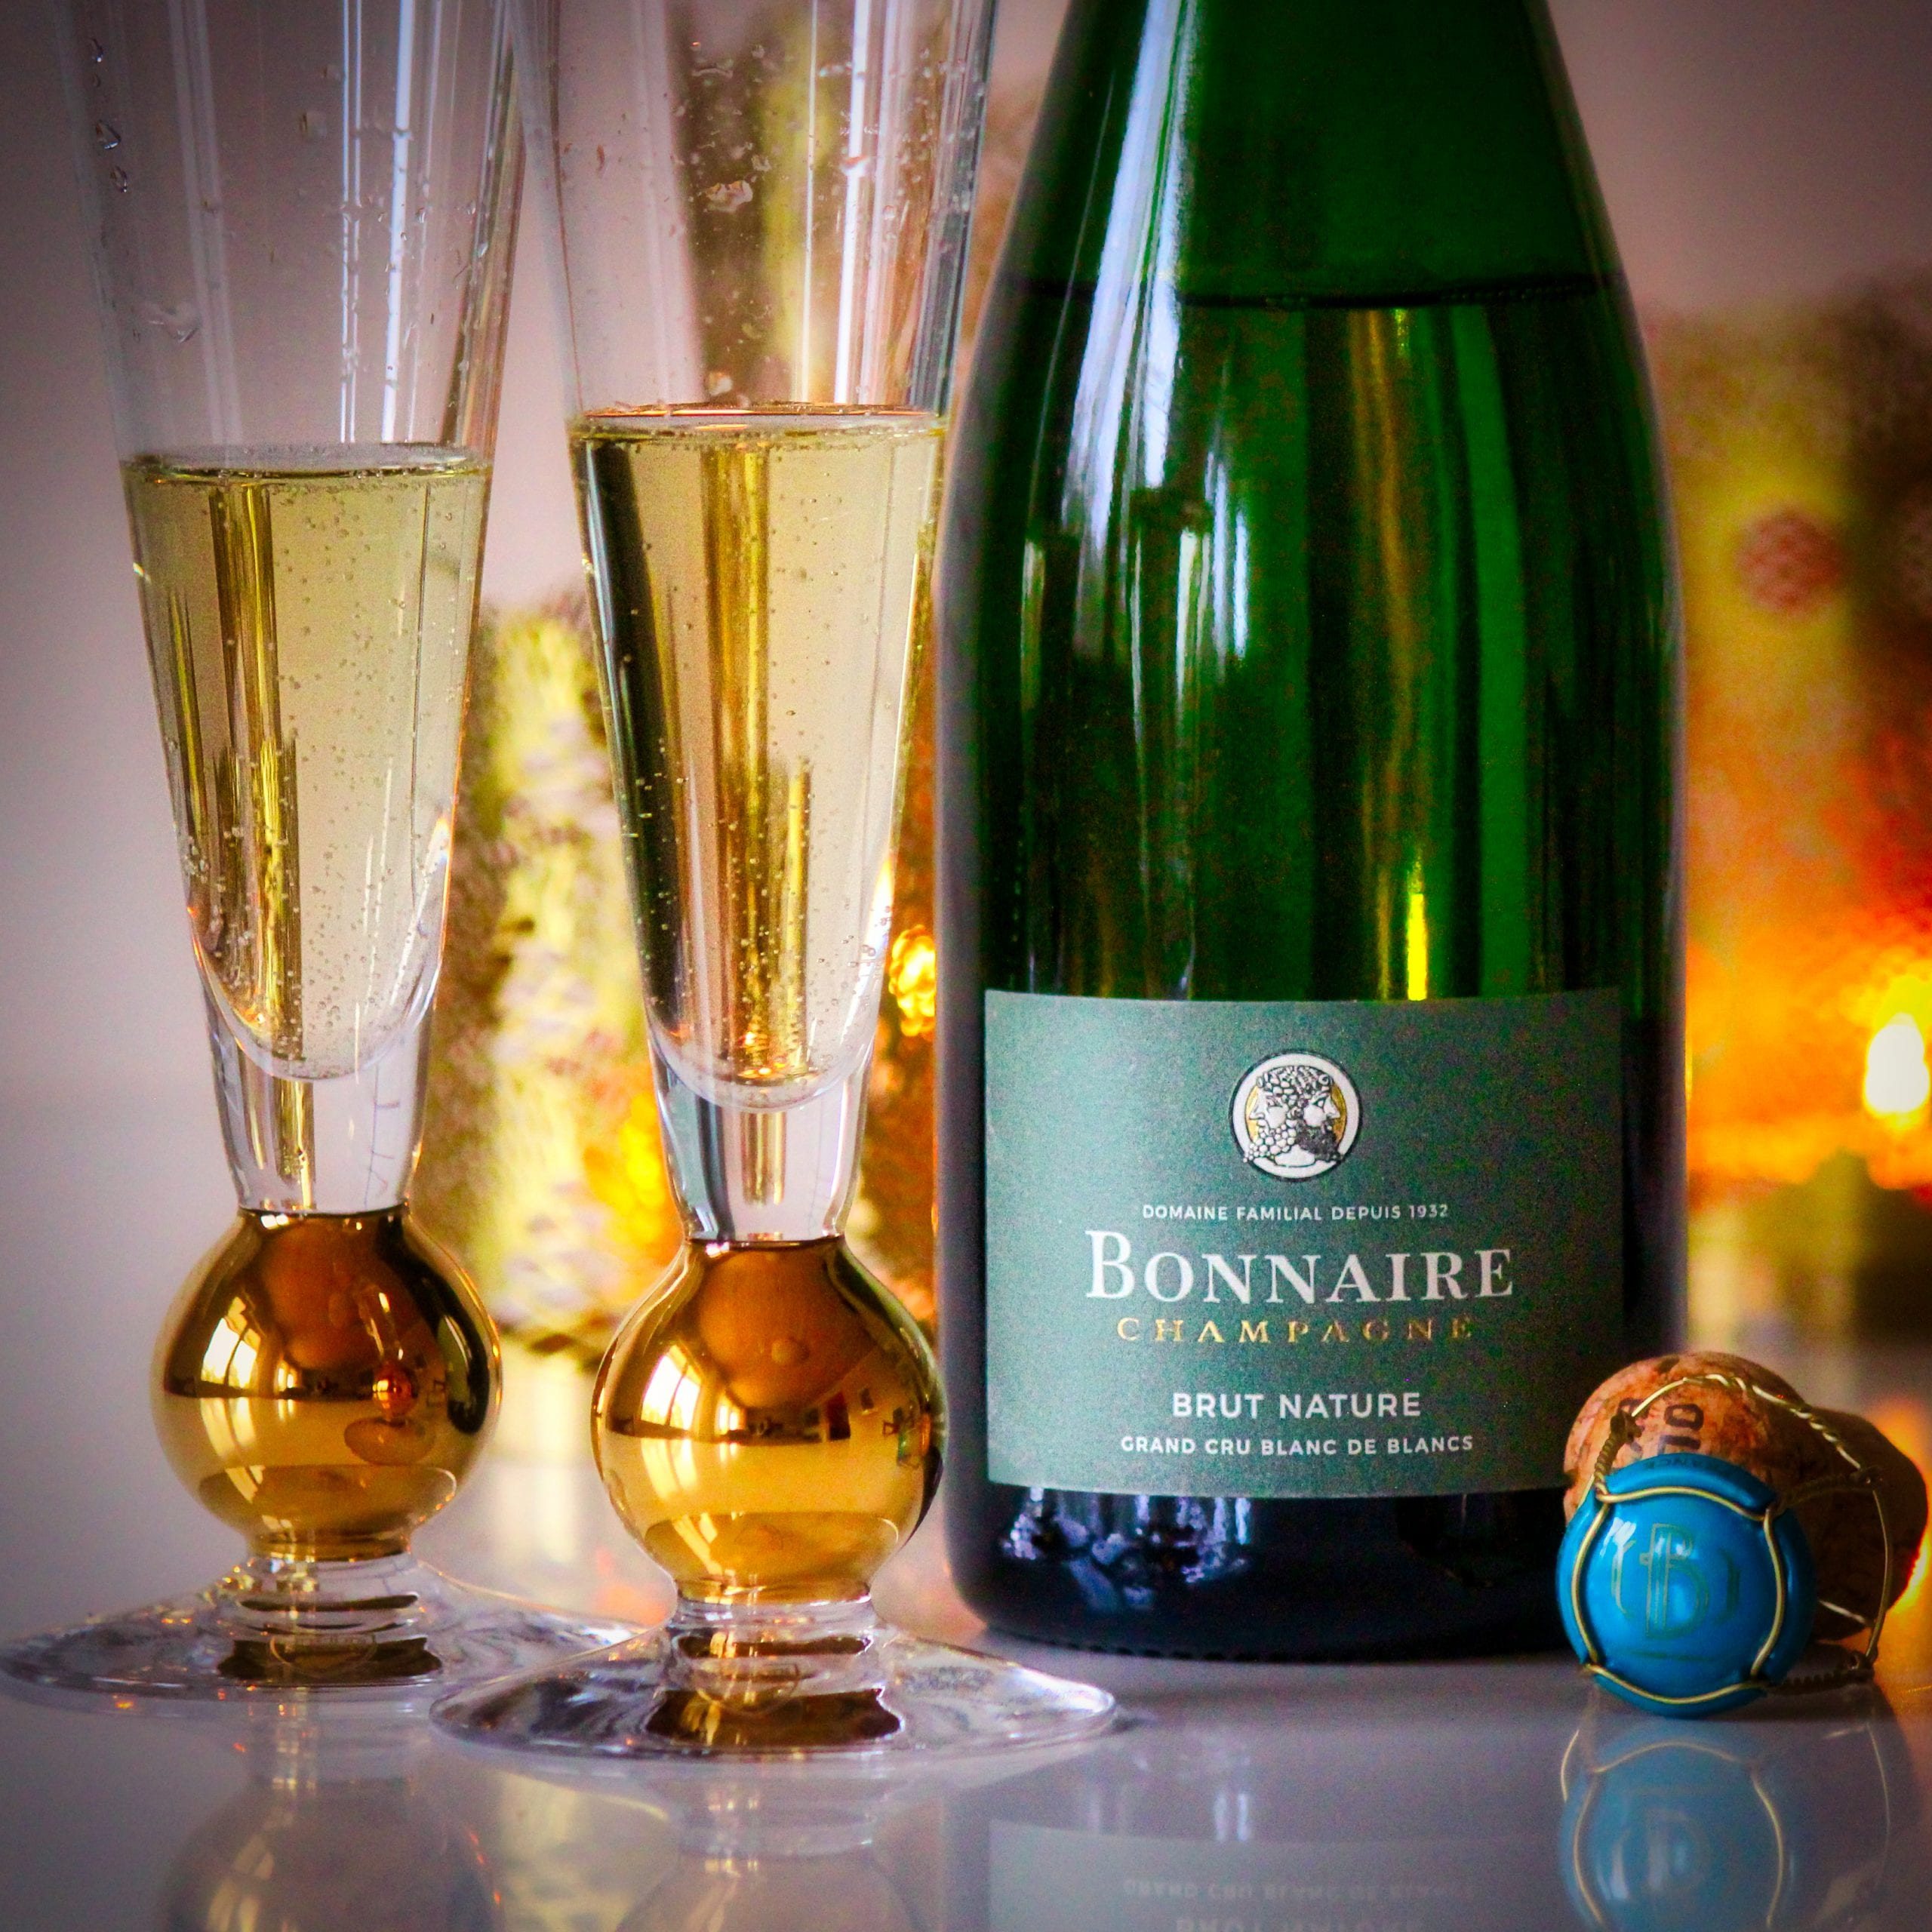 Bonnaire Grand Cru Blanc de Blancs Brut Nature